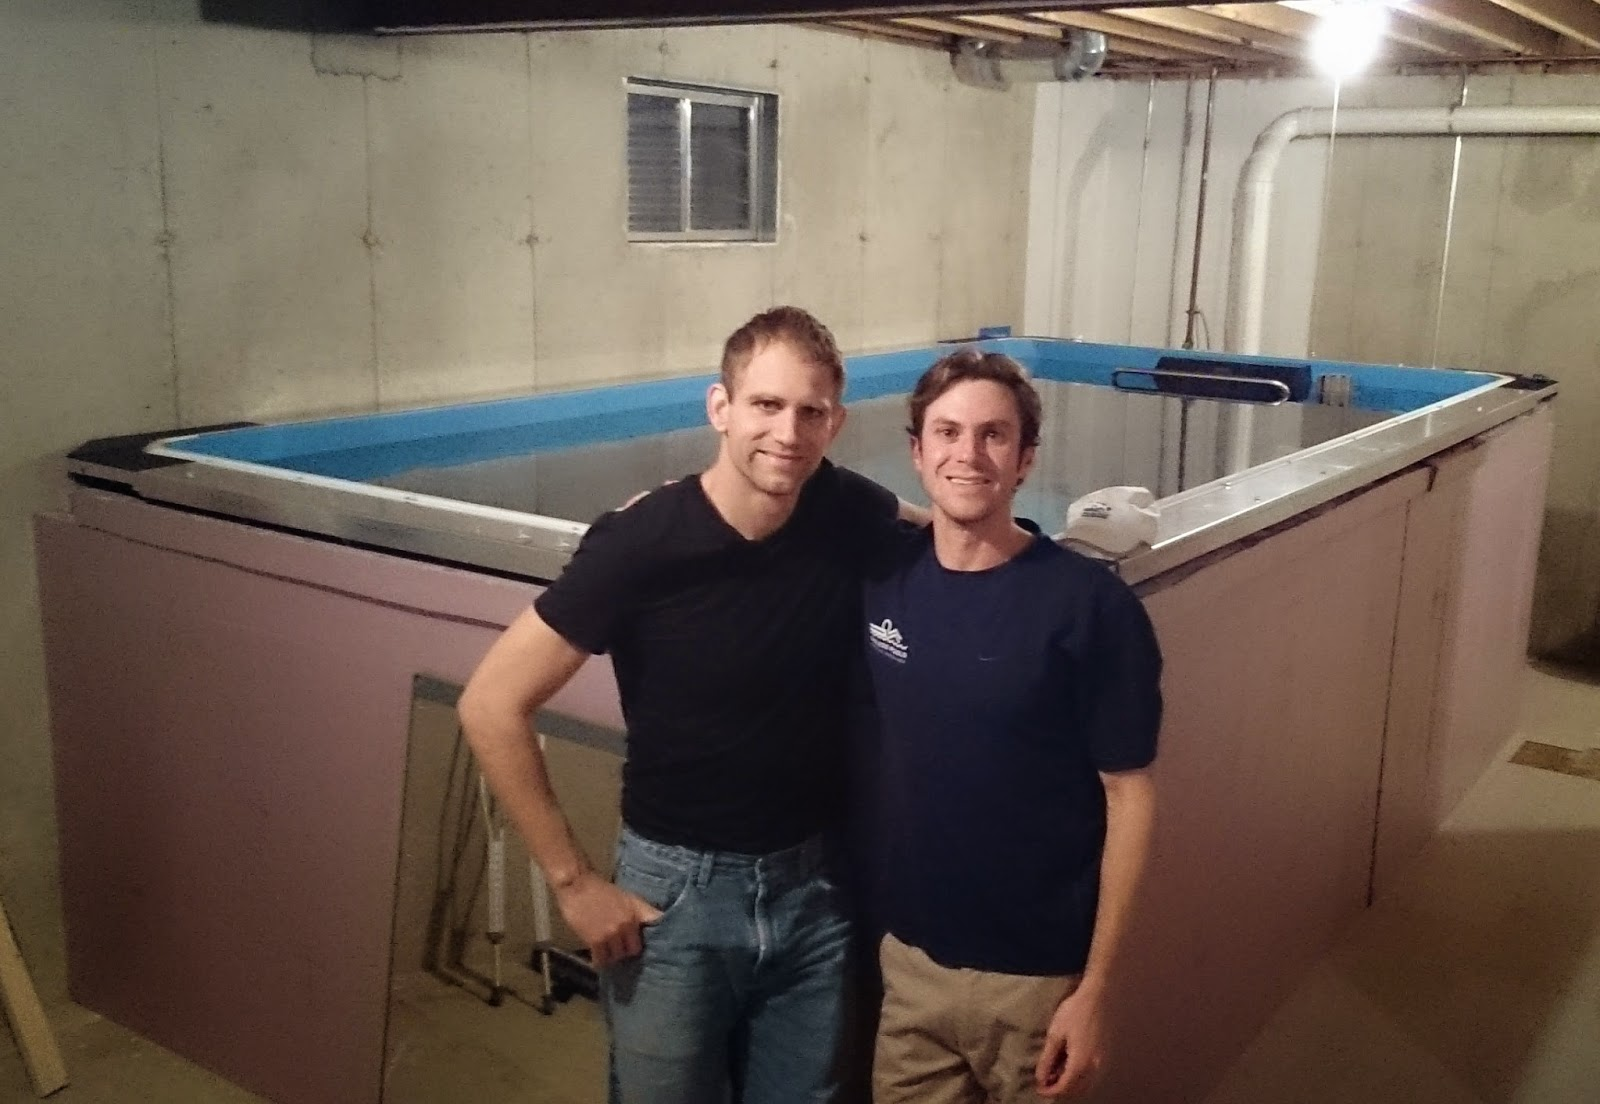 Andrew Starykowicz and Adam Alper, having just installed Andrew's Performance Endless Pool.